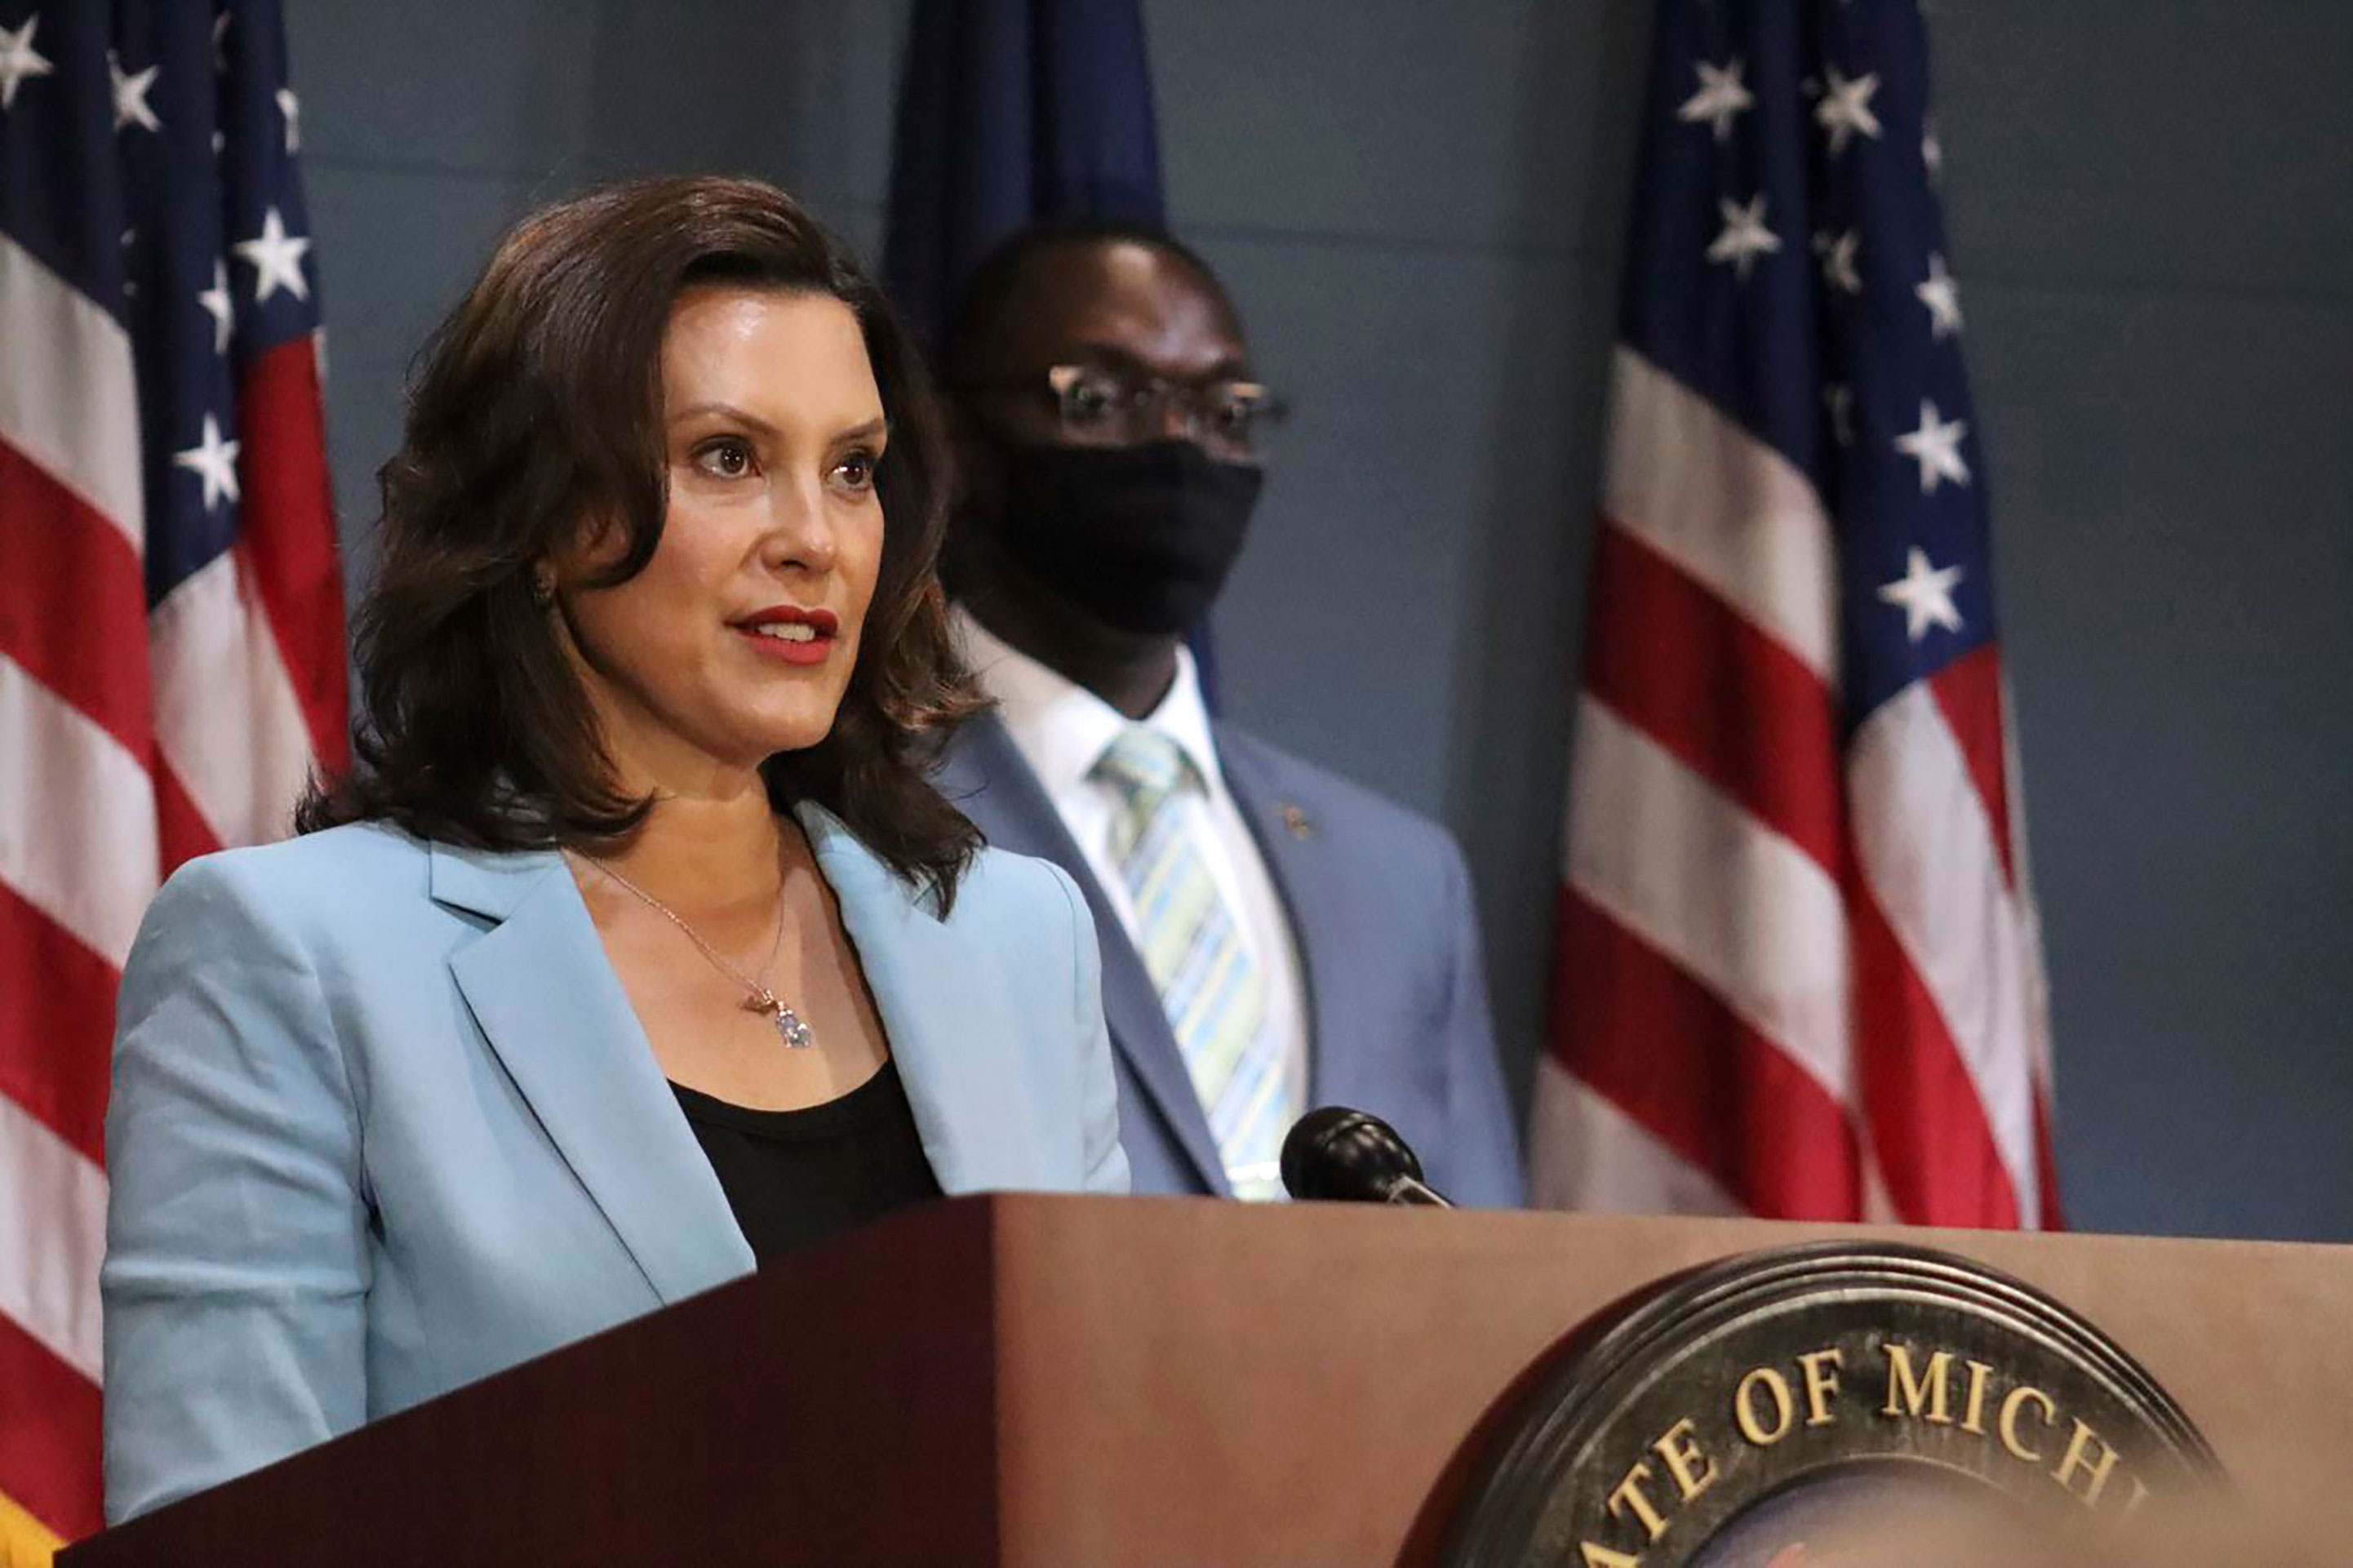 Michigan Gov. Gretchen Whitmer speaks during a press conference in Lansing, Michigan.